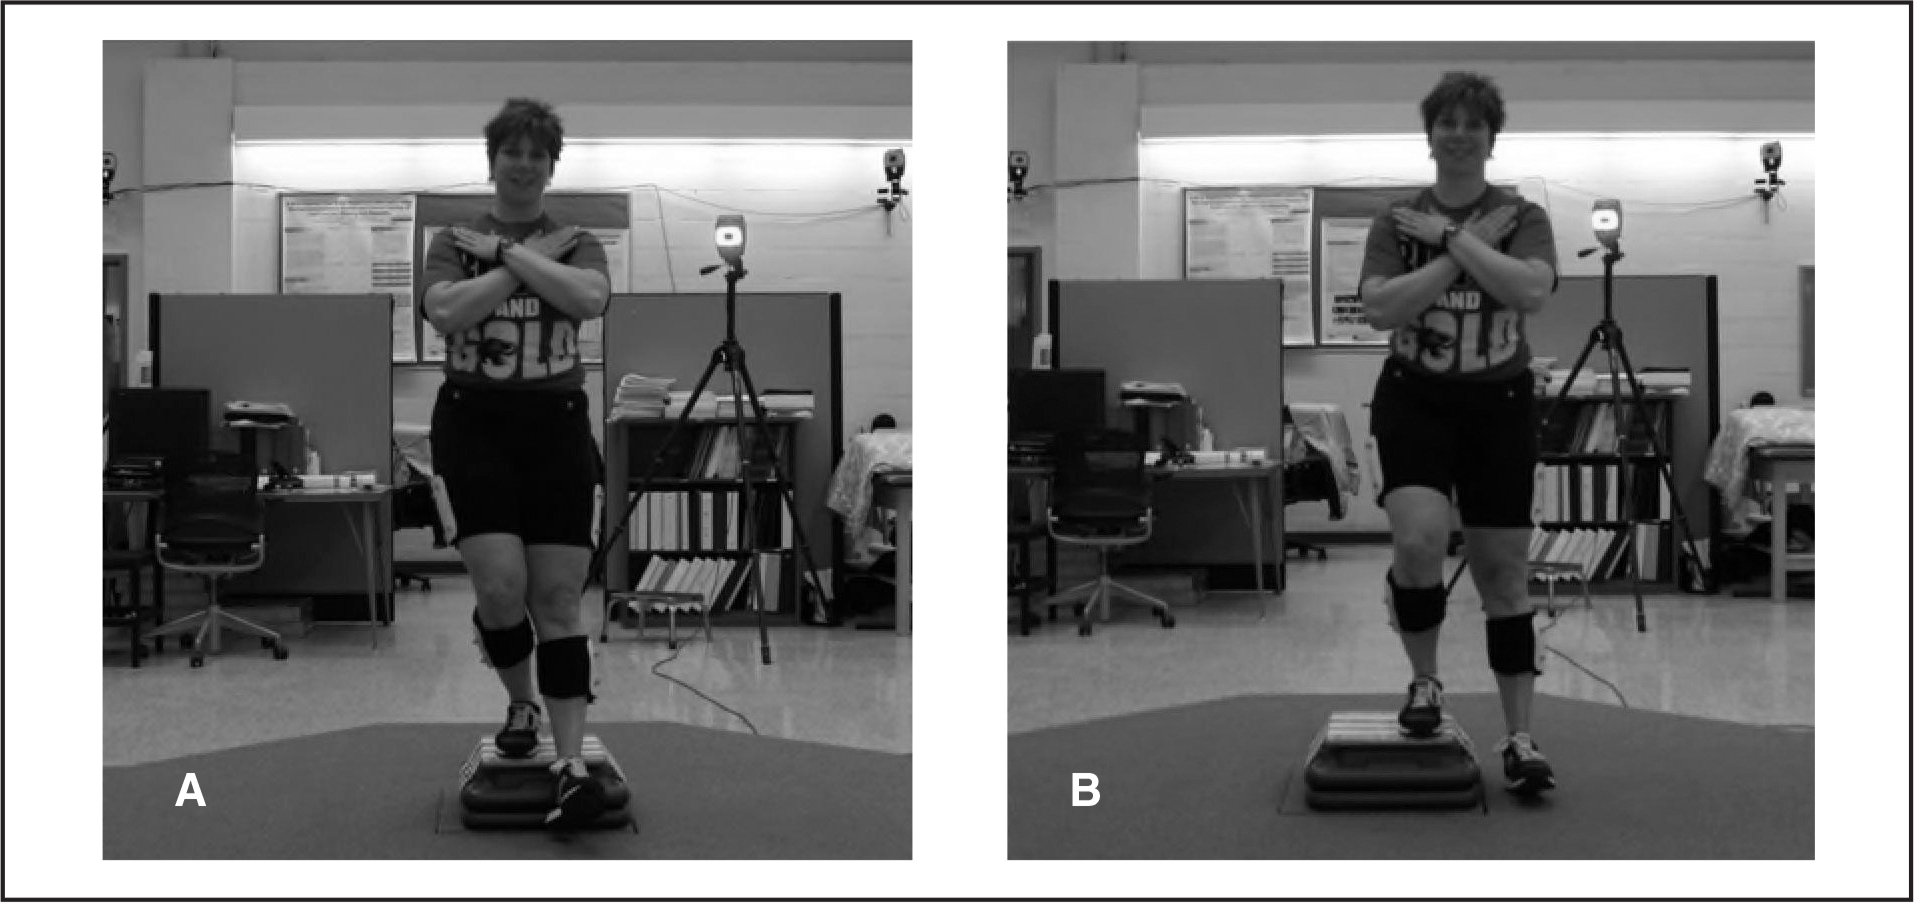 Performance of the forward and lateral step-down tasks at the 6-inch height.